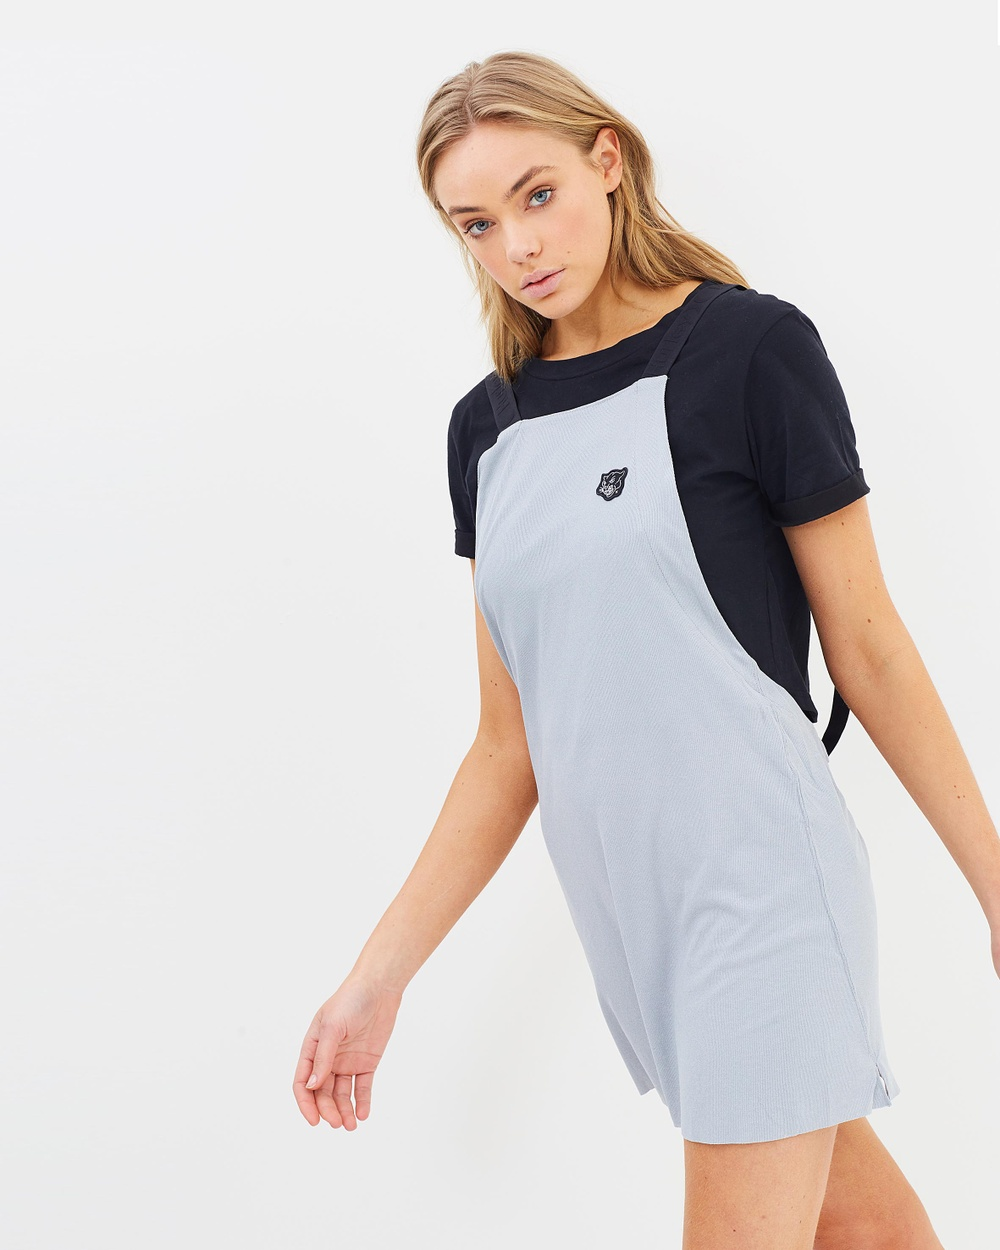 Hurley Quick Dry Tank Dress Dresses Grey Heather Quick Dry Tank Dress